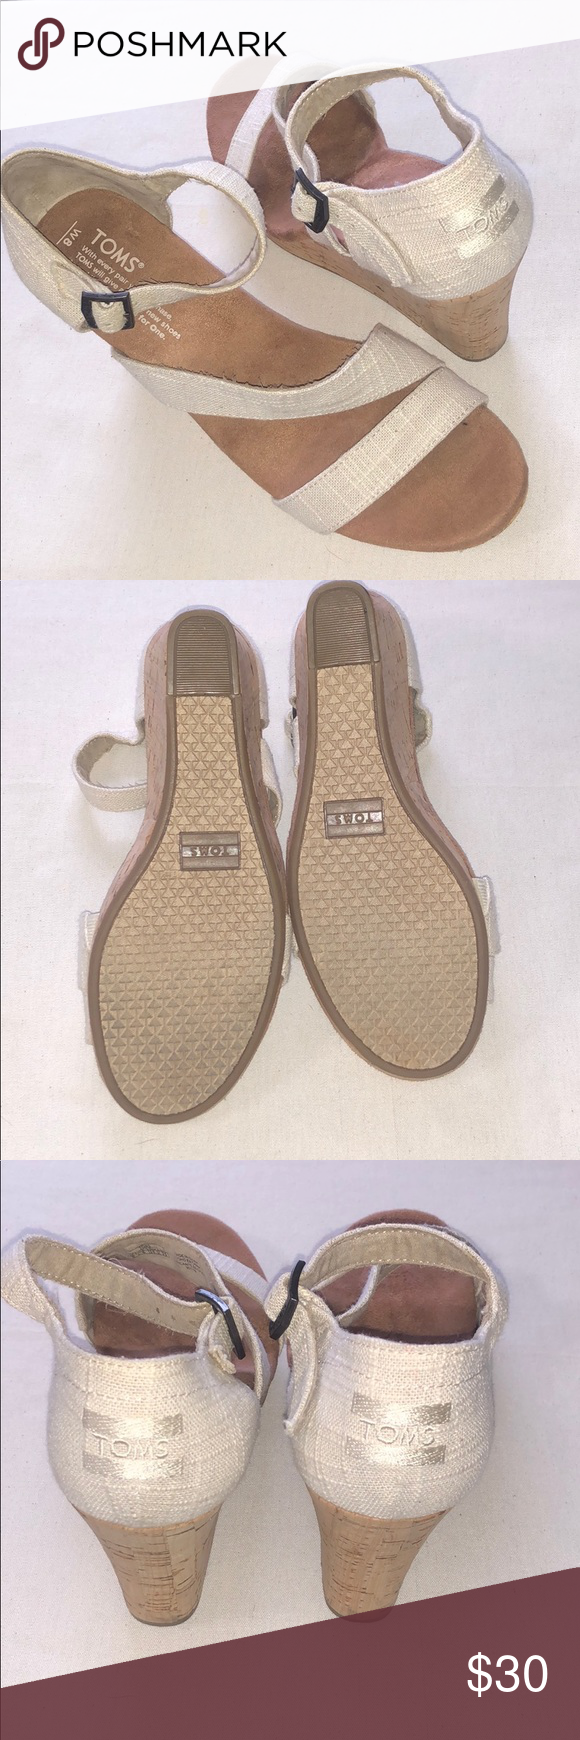 Toms Wedges New, never worn. Natural color  Size 8 Toms Shoes Wedges #tomwedges Toms Wedges New, never worn. Natural color  Size 8 Toms Shoes Wedges #tomwedges Toms Wedges New, never worn. Natural color  Size 8 Toms Shoes Wedges #tomwedges Toms Wedges New, never worn. Natural color  Size 8 Toms Shoes Wedges #tomwedges